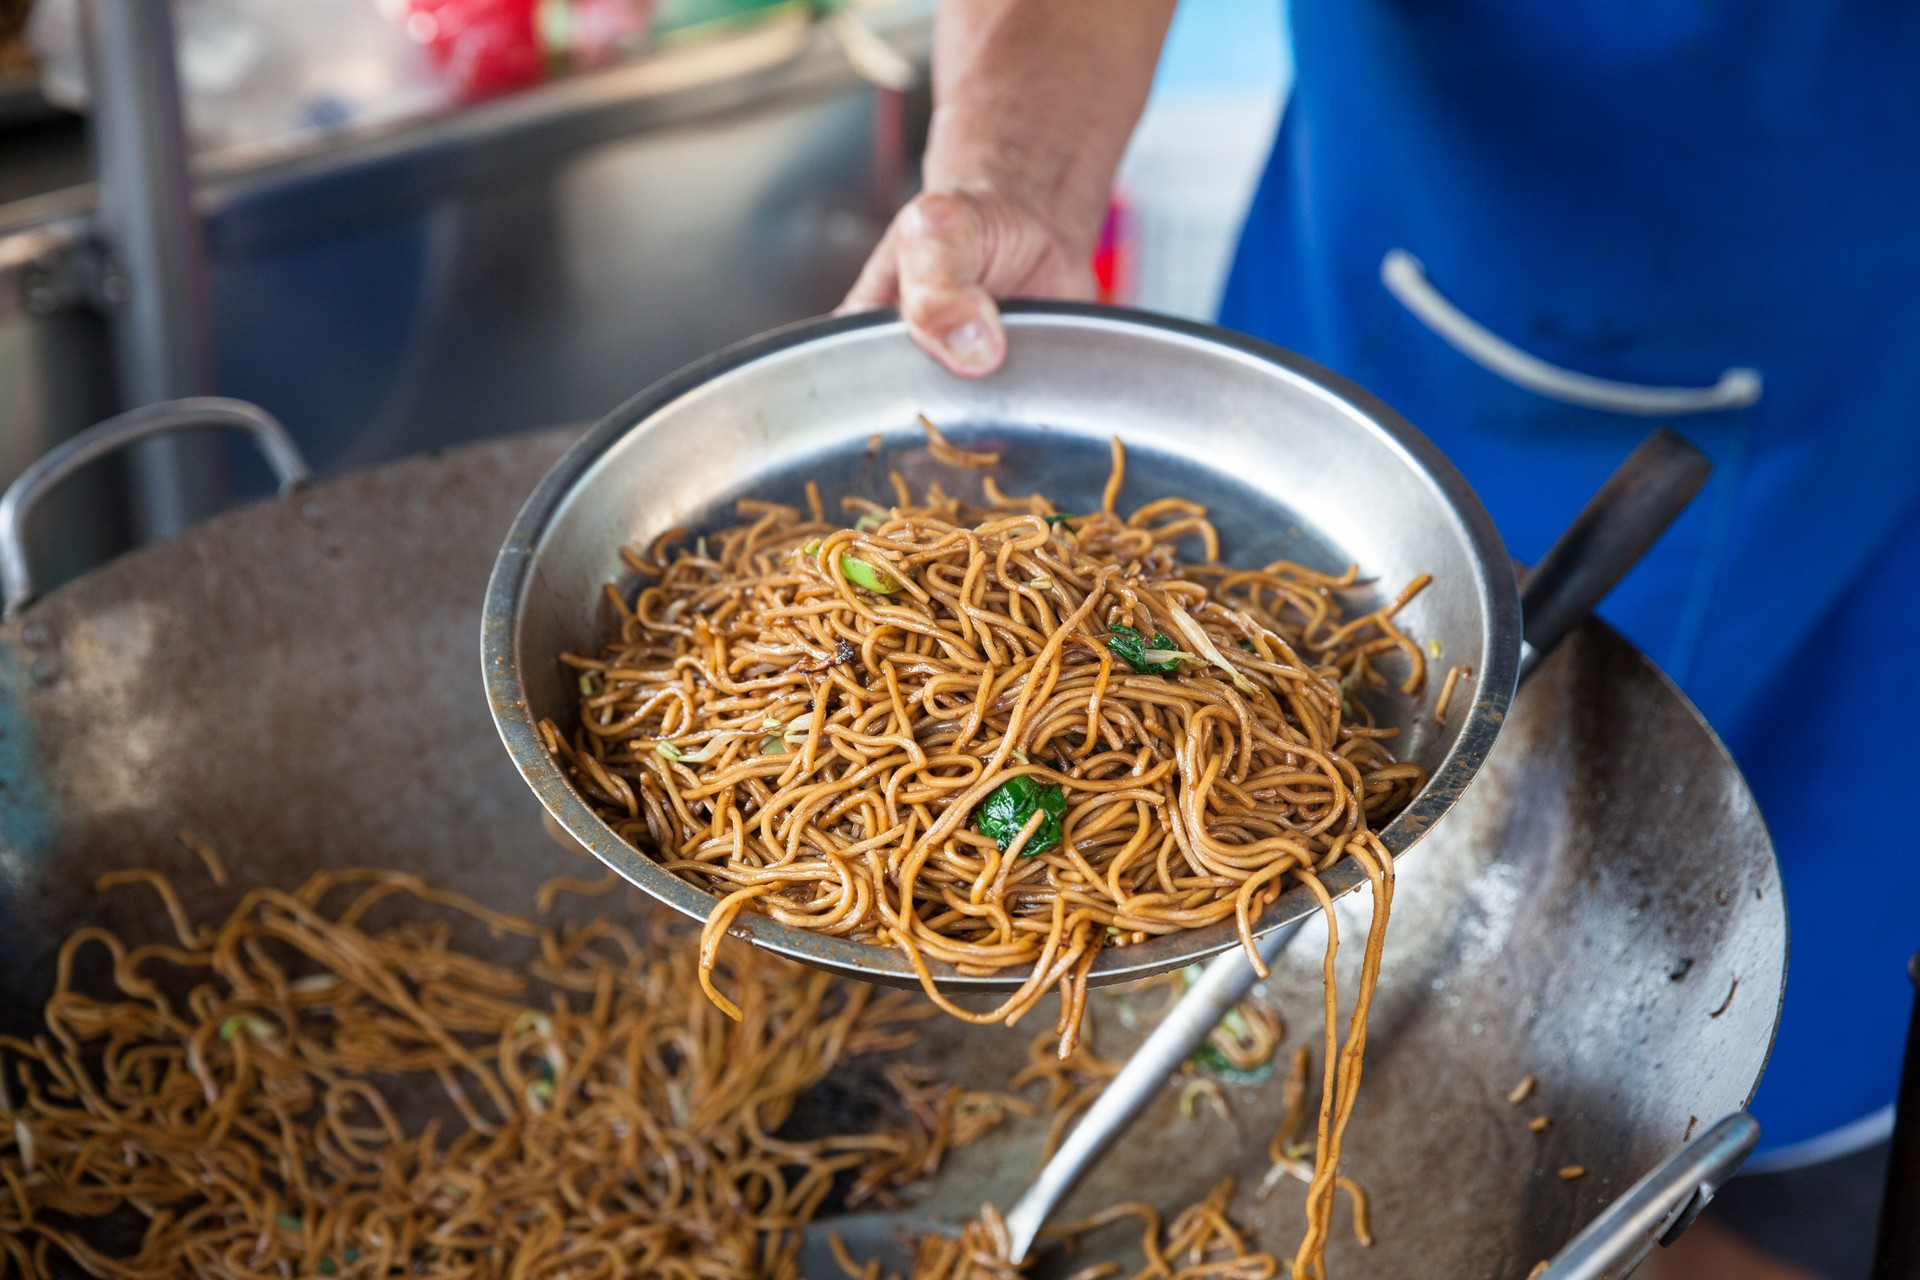 Noodles at a street food stall in Penang